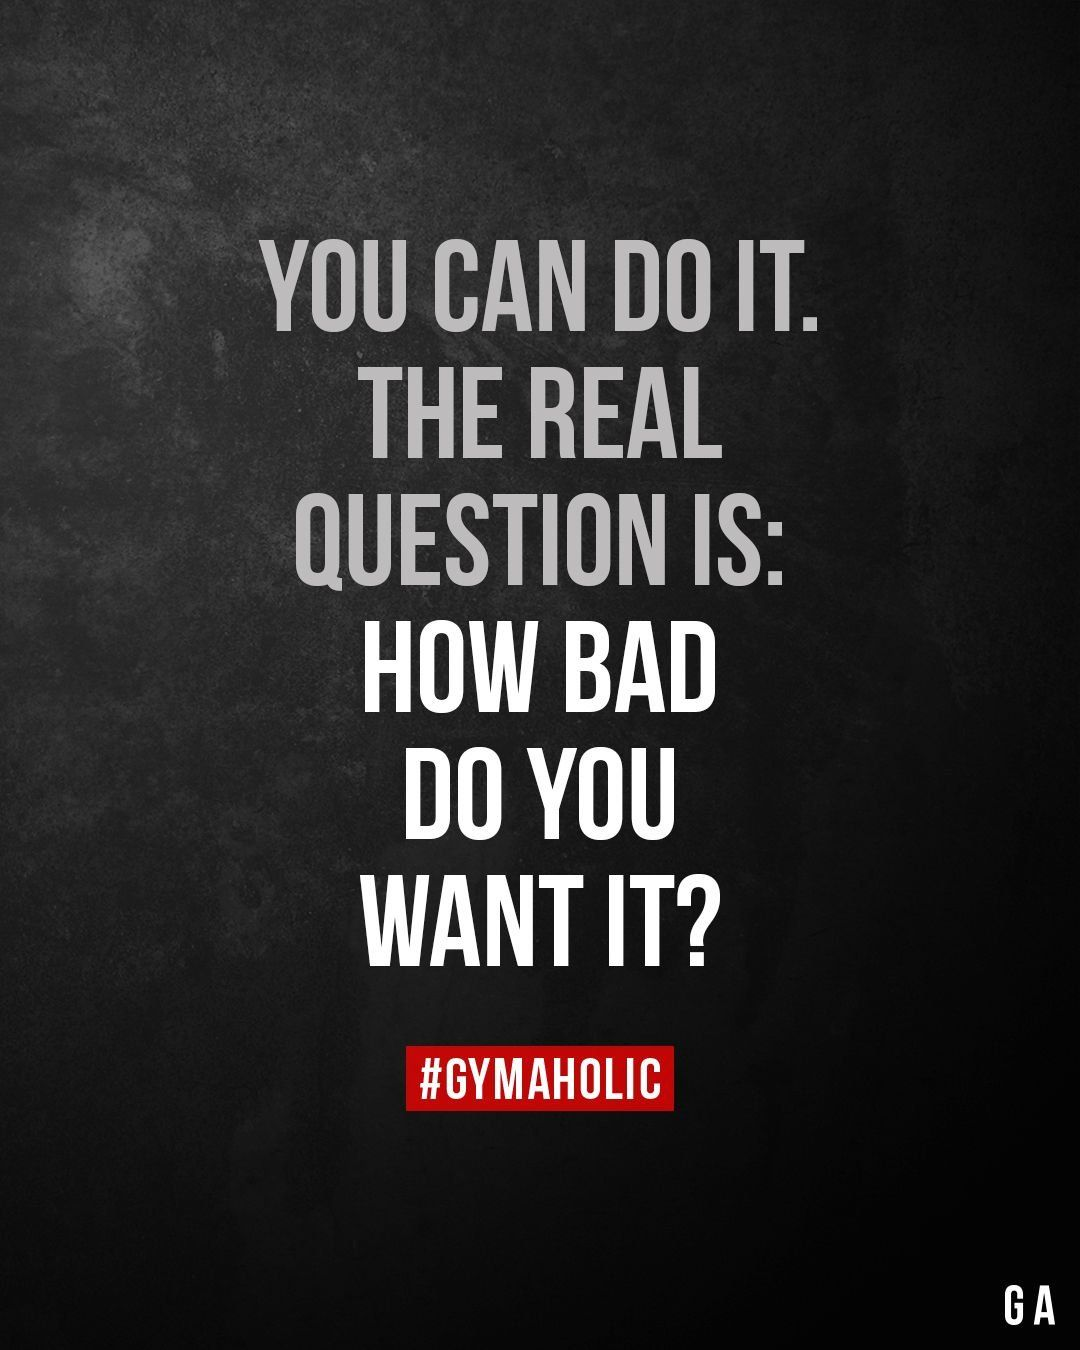 You Can Do It The Real Question Is How Bad Do You Want It 1000 Fitness Motivation Quotes This Or That Questions Determination Quotes Inspiration